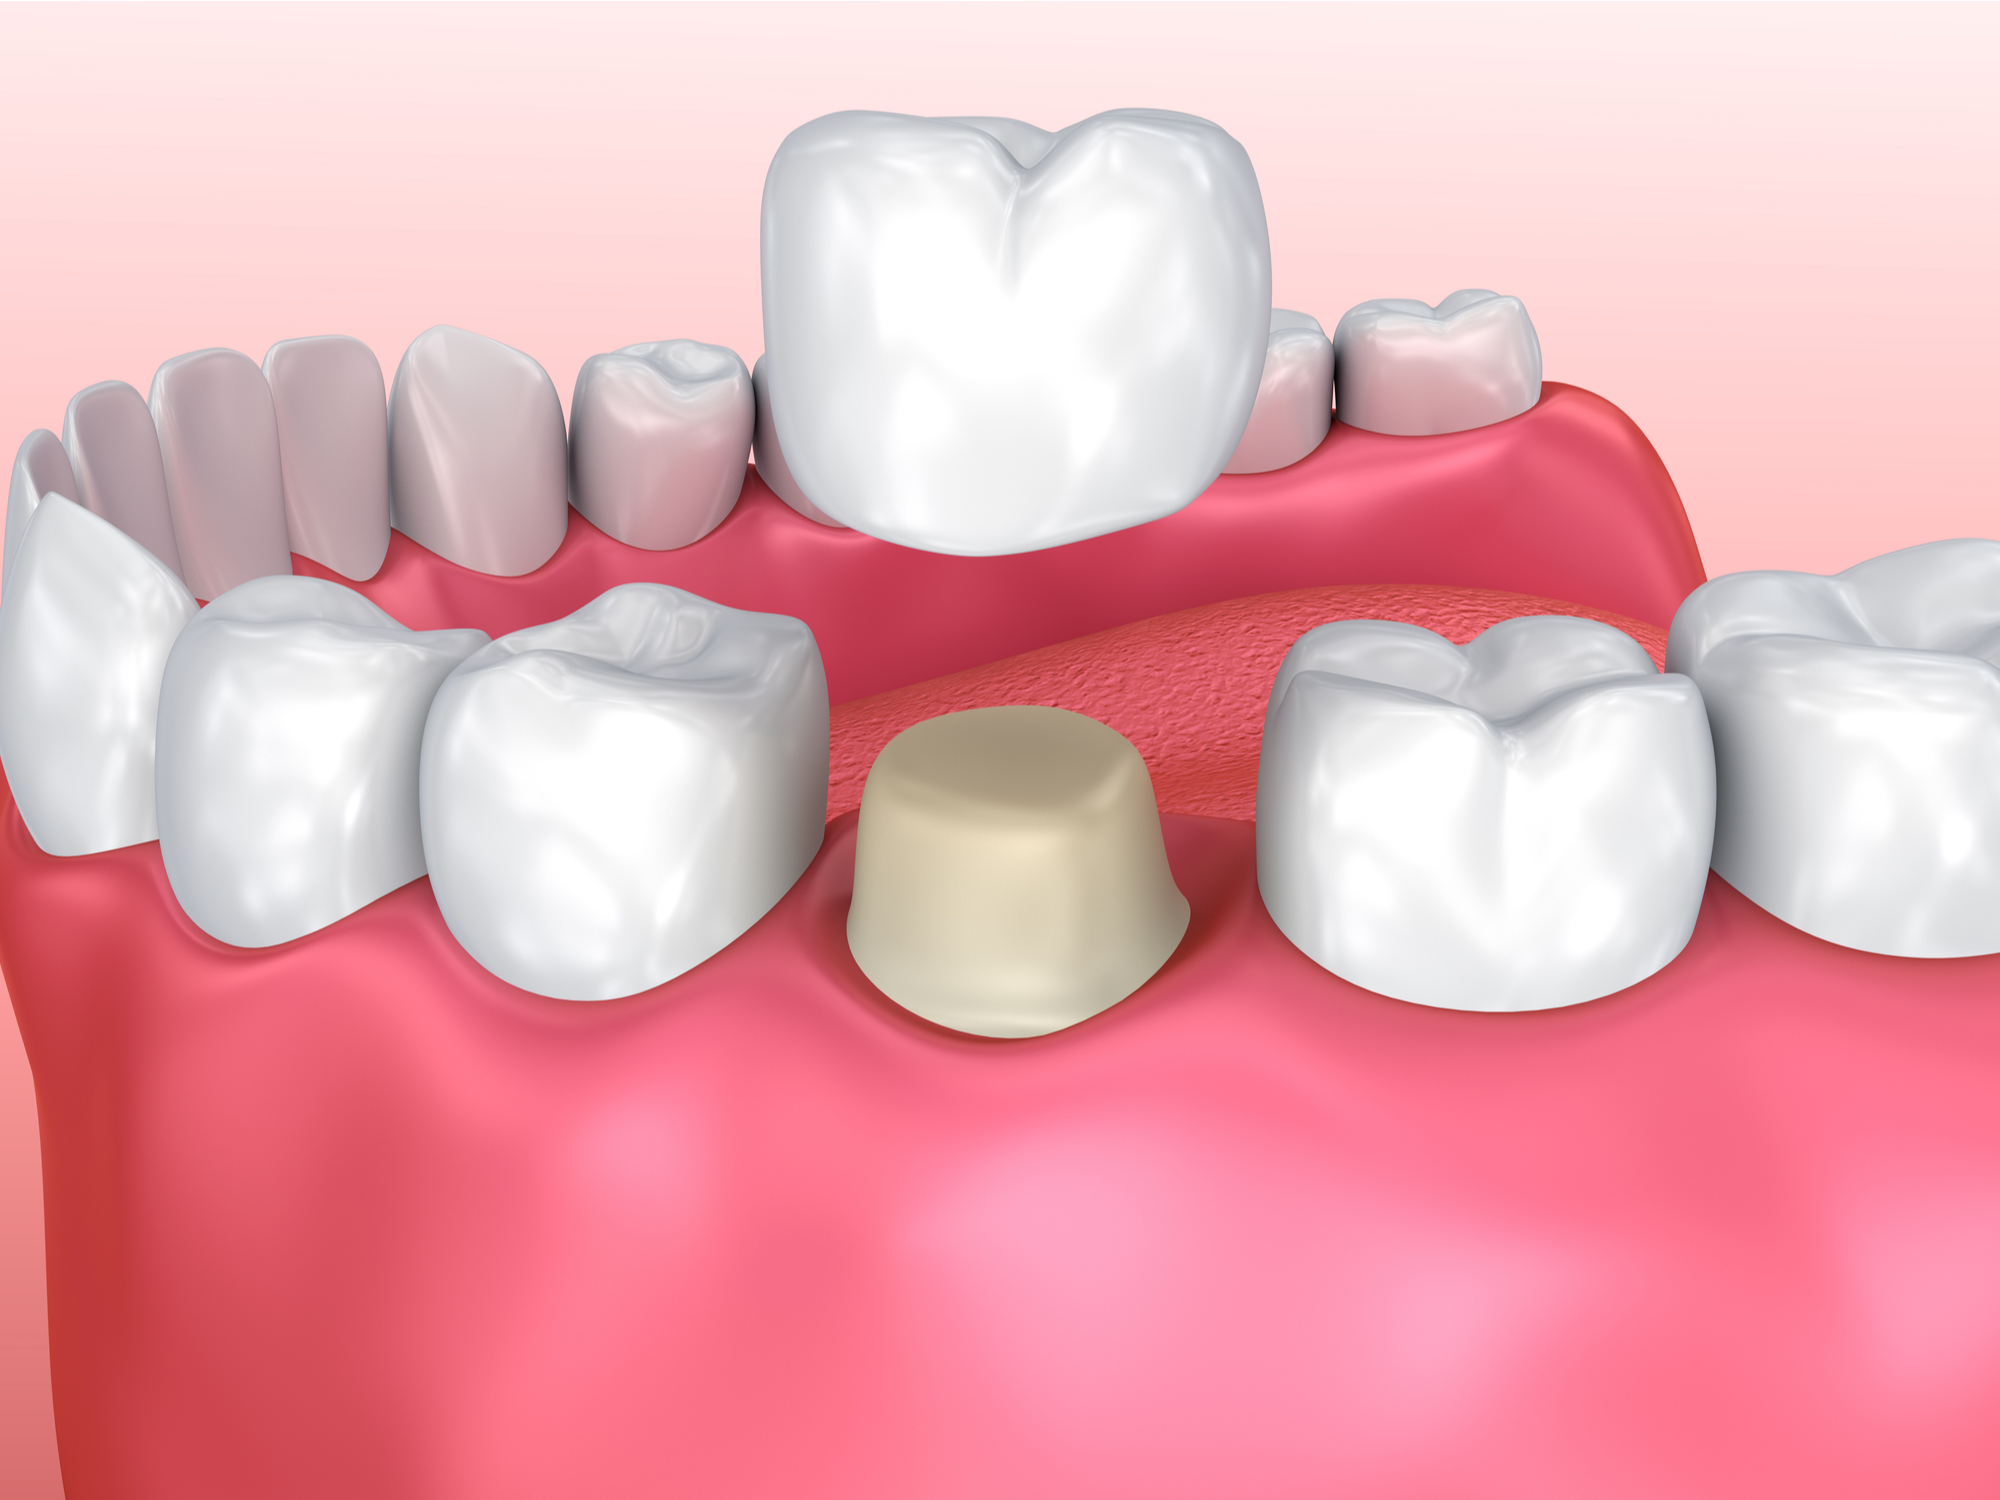 Fillings vs. Crowns: What's the Difference?